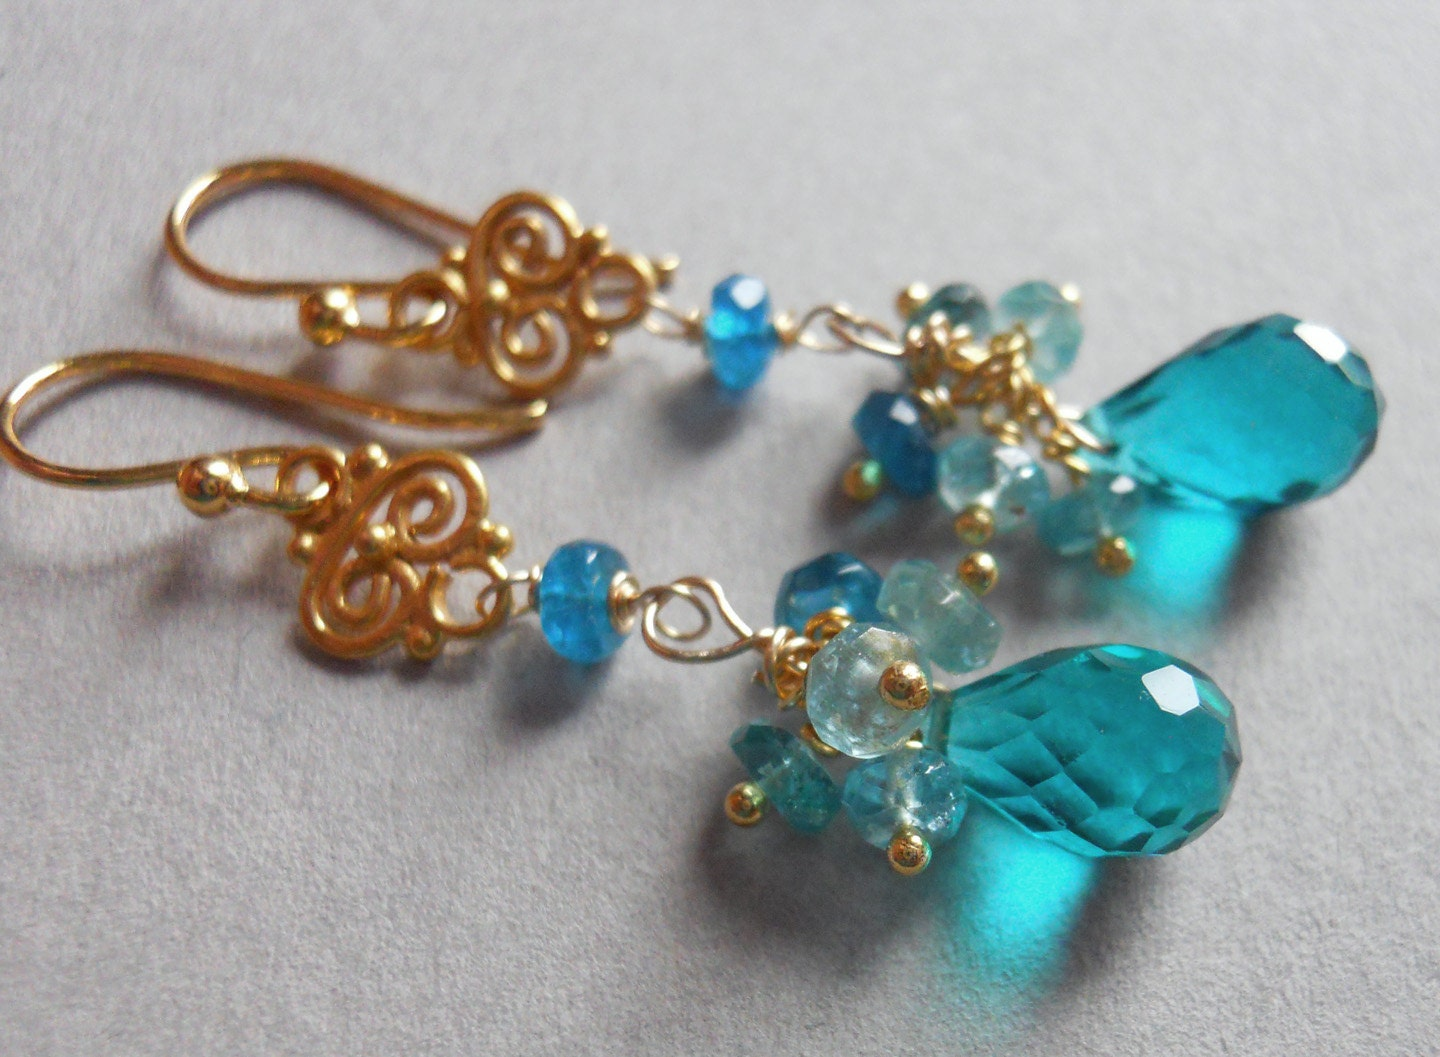 Skinny Dip Teal quartz and apatite dangle earrings - $55.00 USD